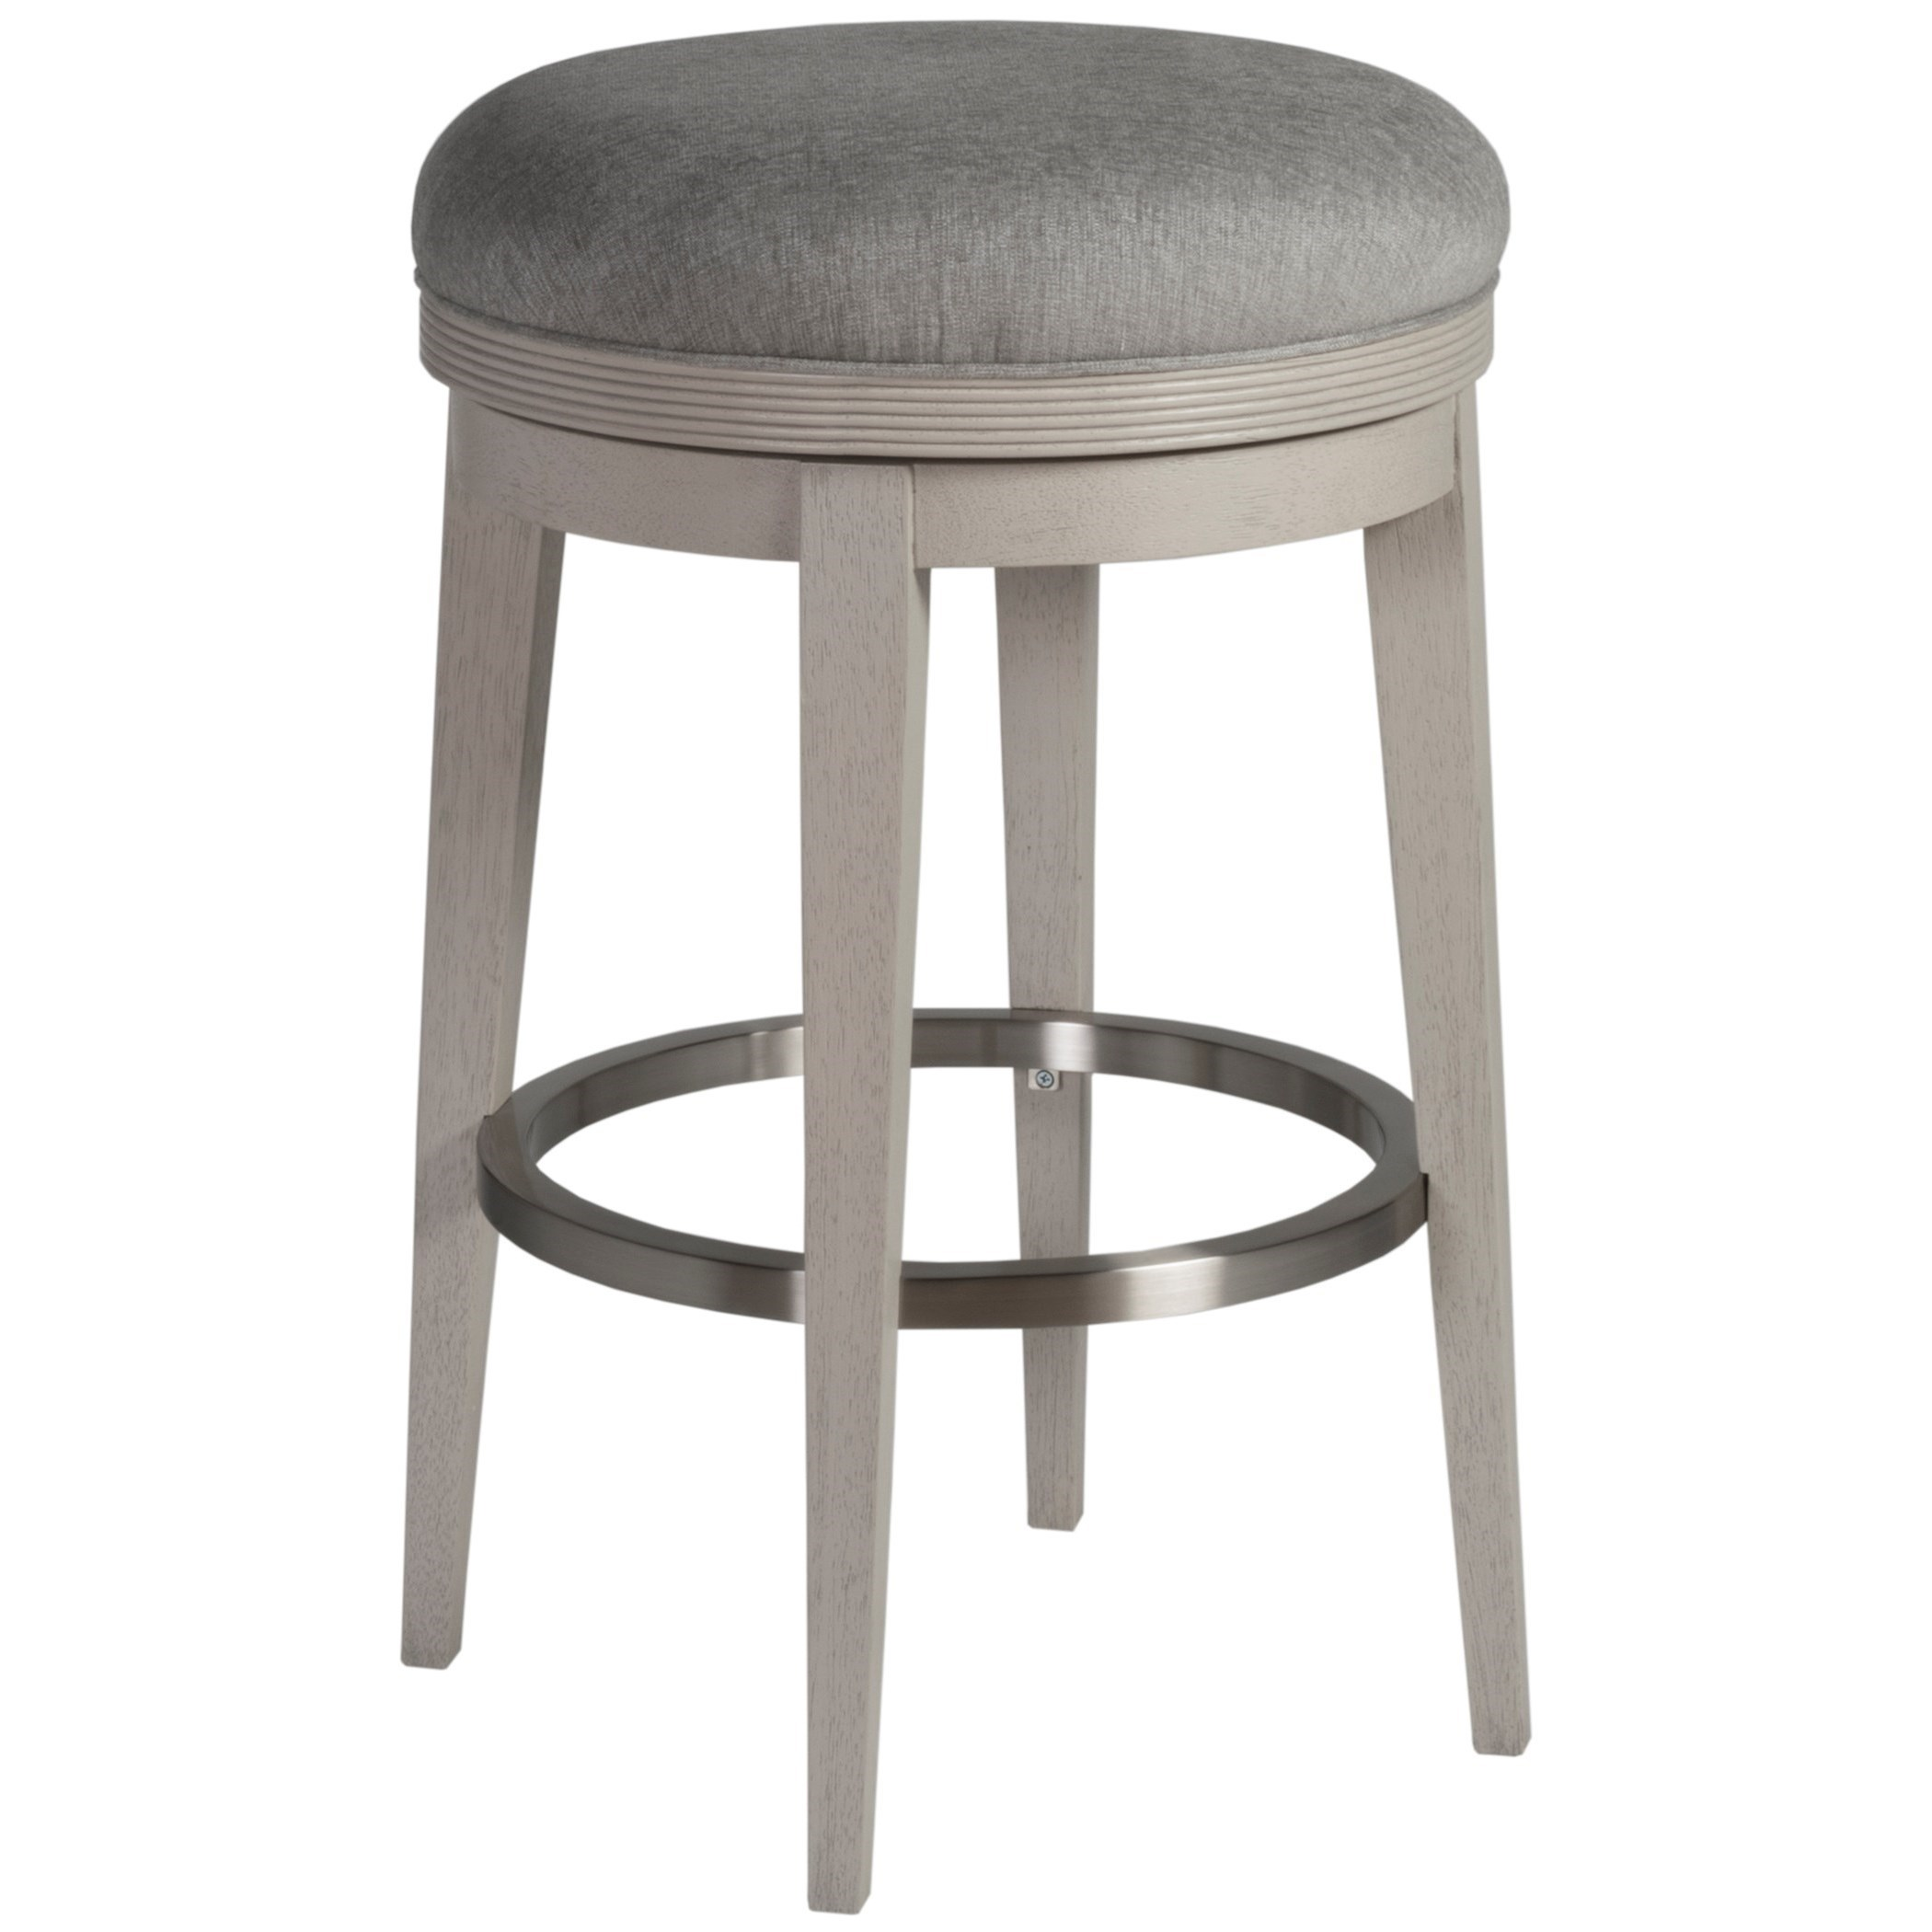 Gradient Swivel Barstool by Artistica at Baer's Furniture